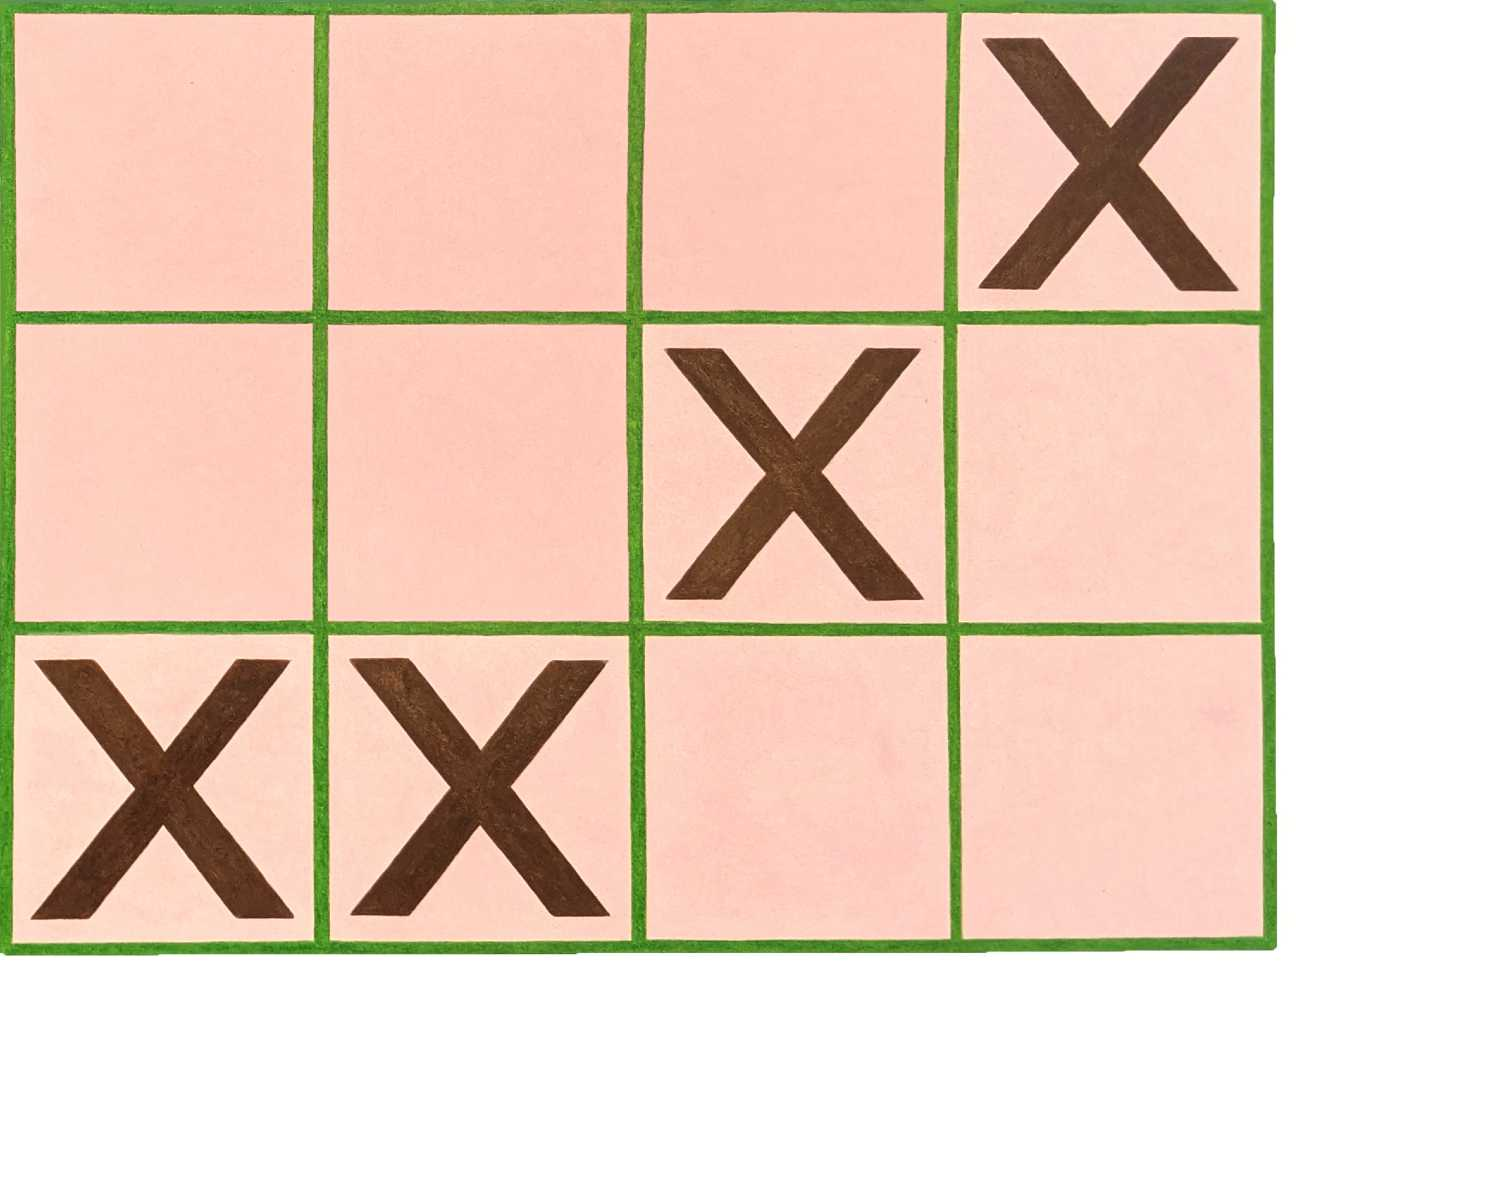 """Pink tic tac toe like board with additional column. Grid image with four columns and three rows composed in green, over a light pink background, bound by white on the right and bottom side. Maroon """"X"""" in:  Column 4, Row 1, Column 3, Row 2, Columns 1 and 2, Row 3."""